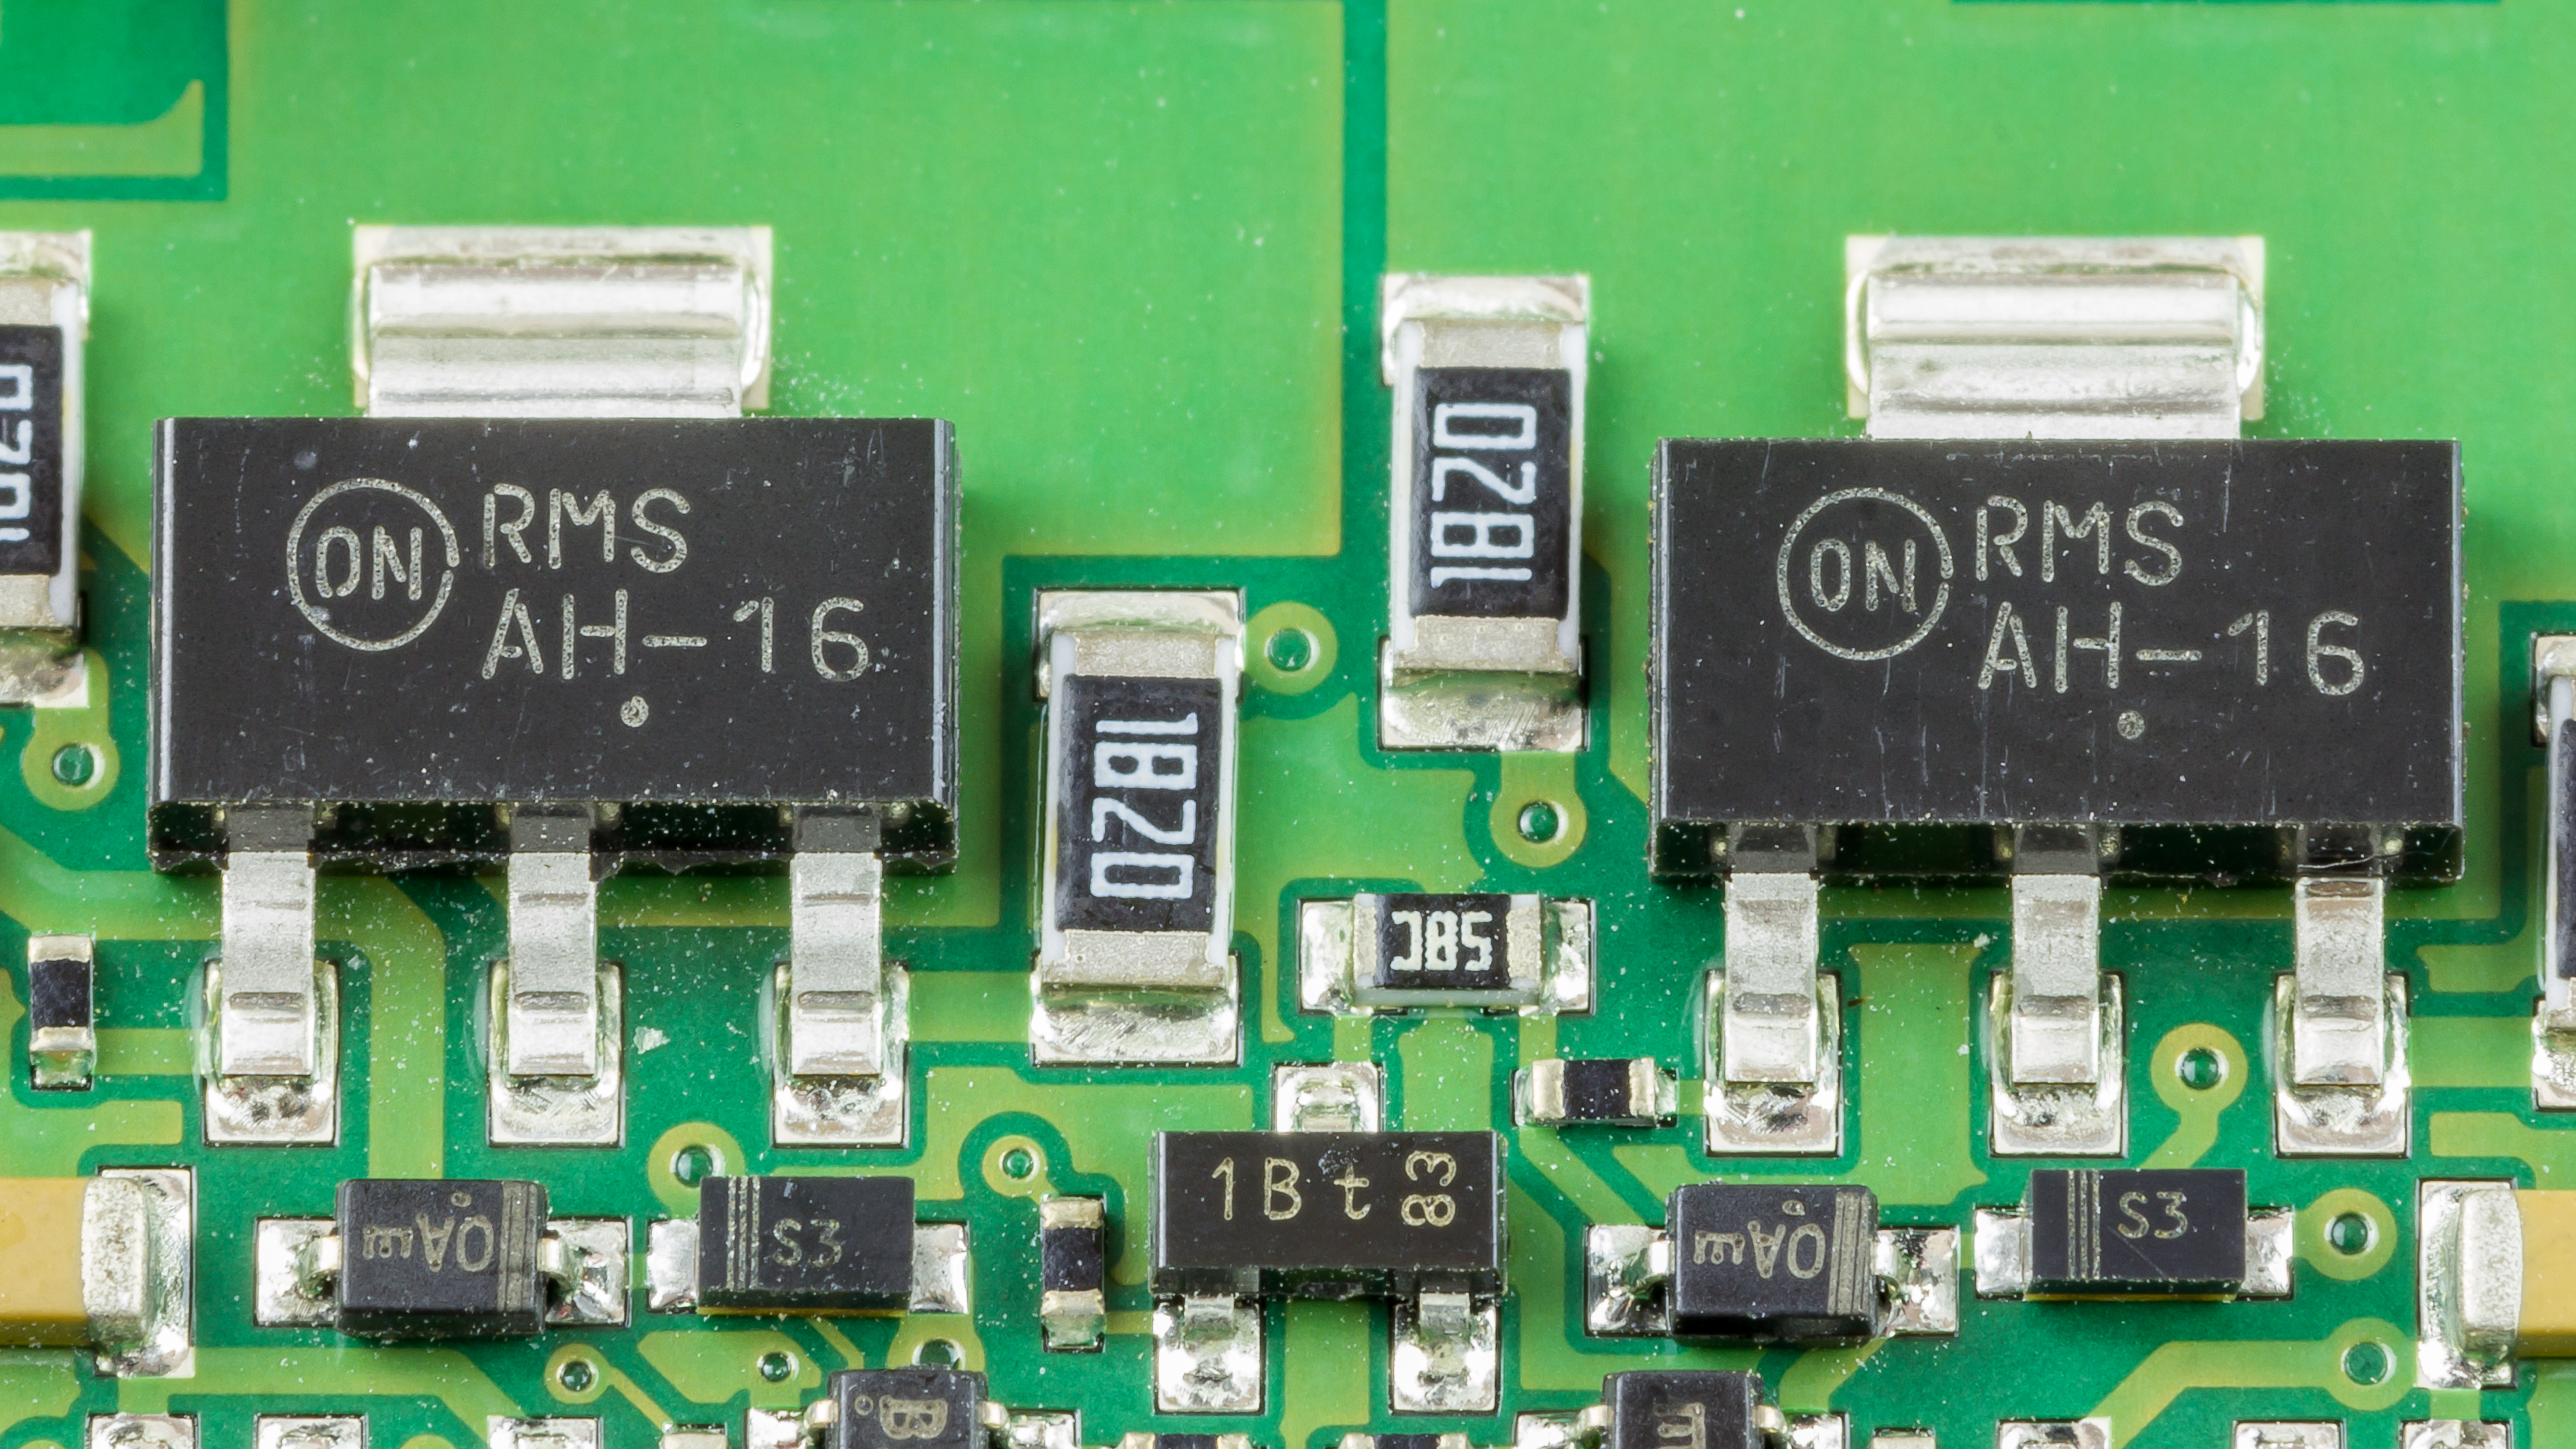 Chip Power Inductor Market Segmentation and Analysis by